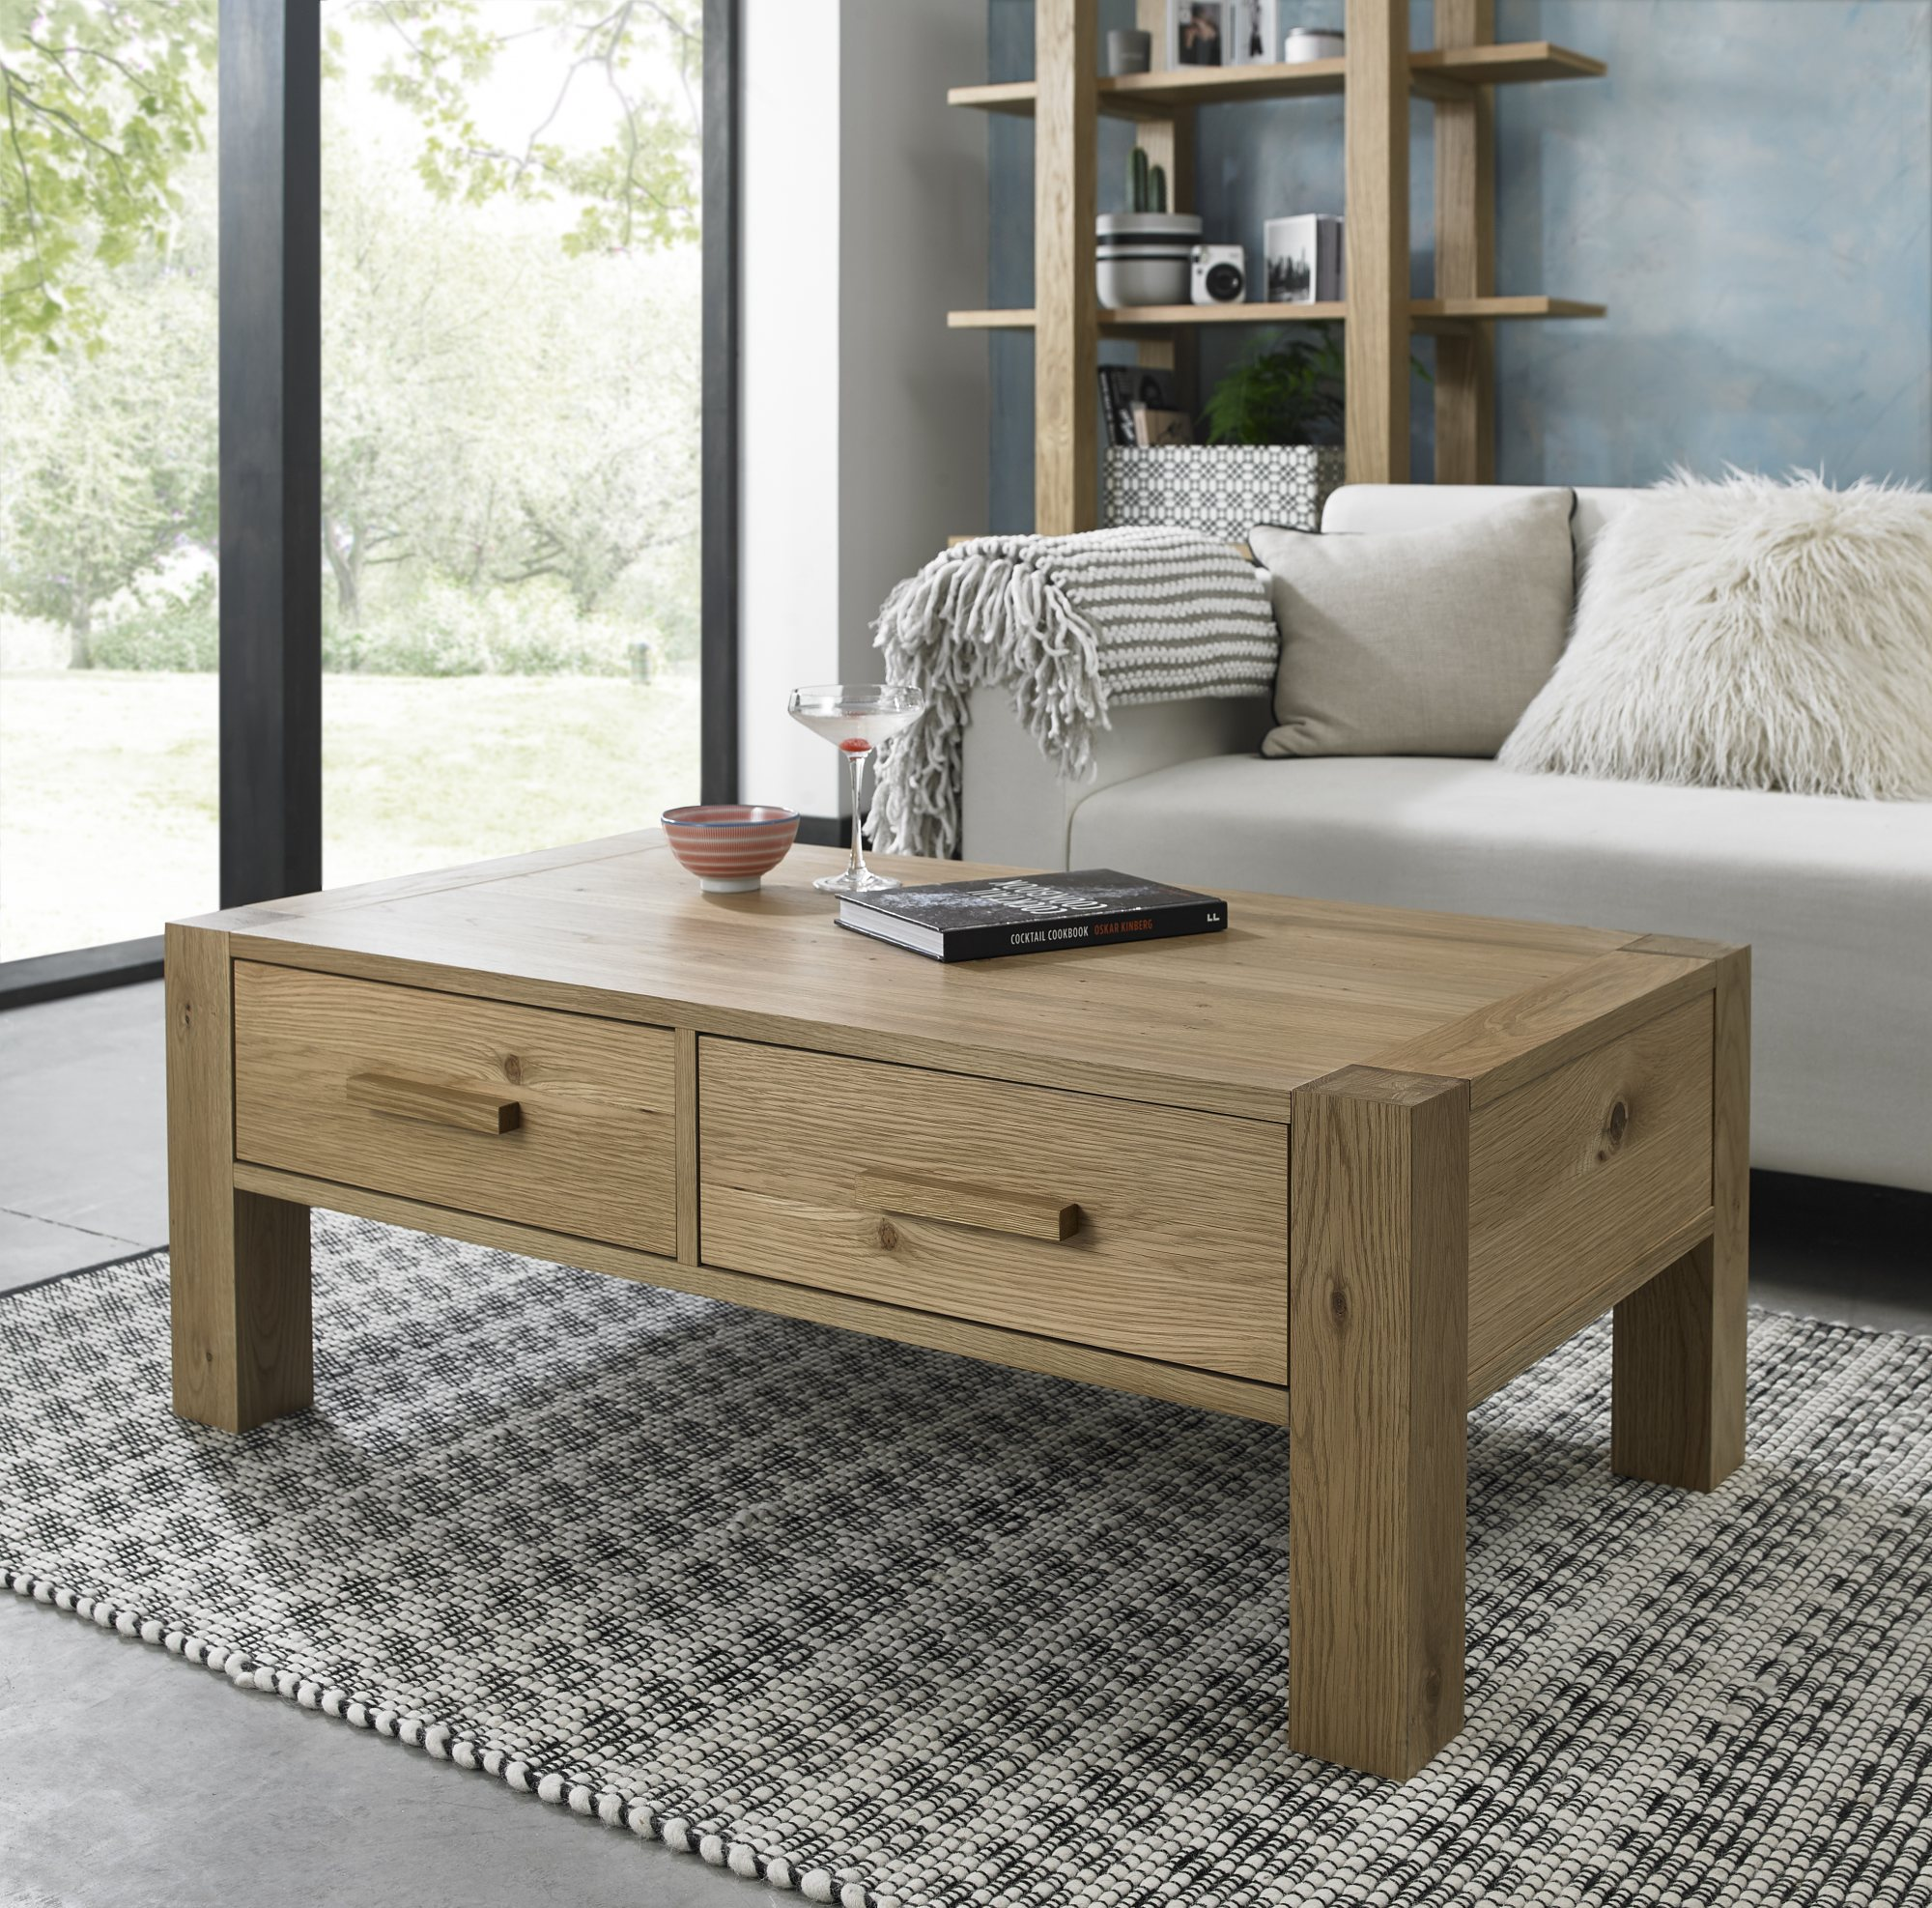 LILLE OAK DRAWER COFFEE TABLE - L110cm x D60cm x H40cm